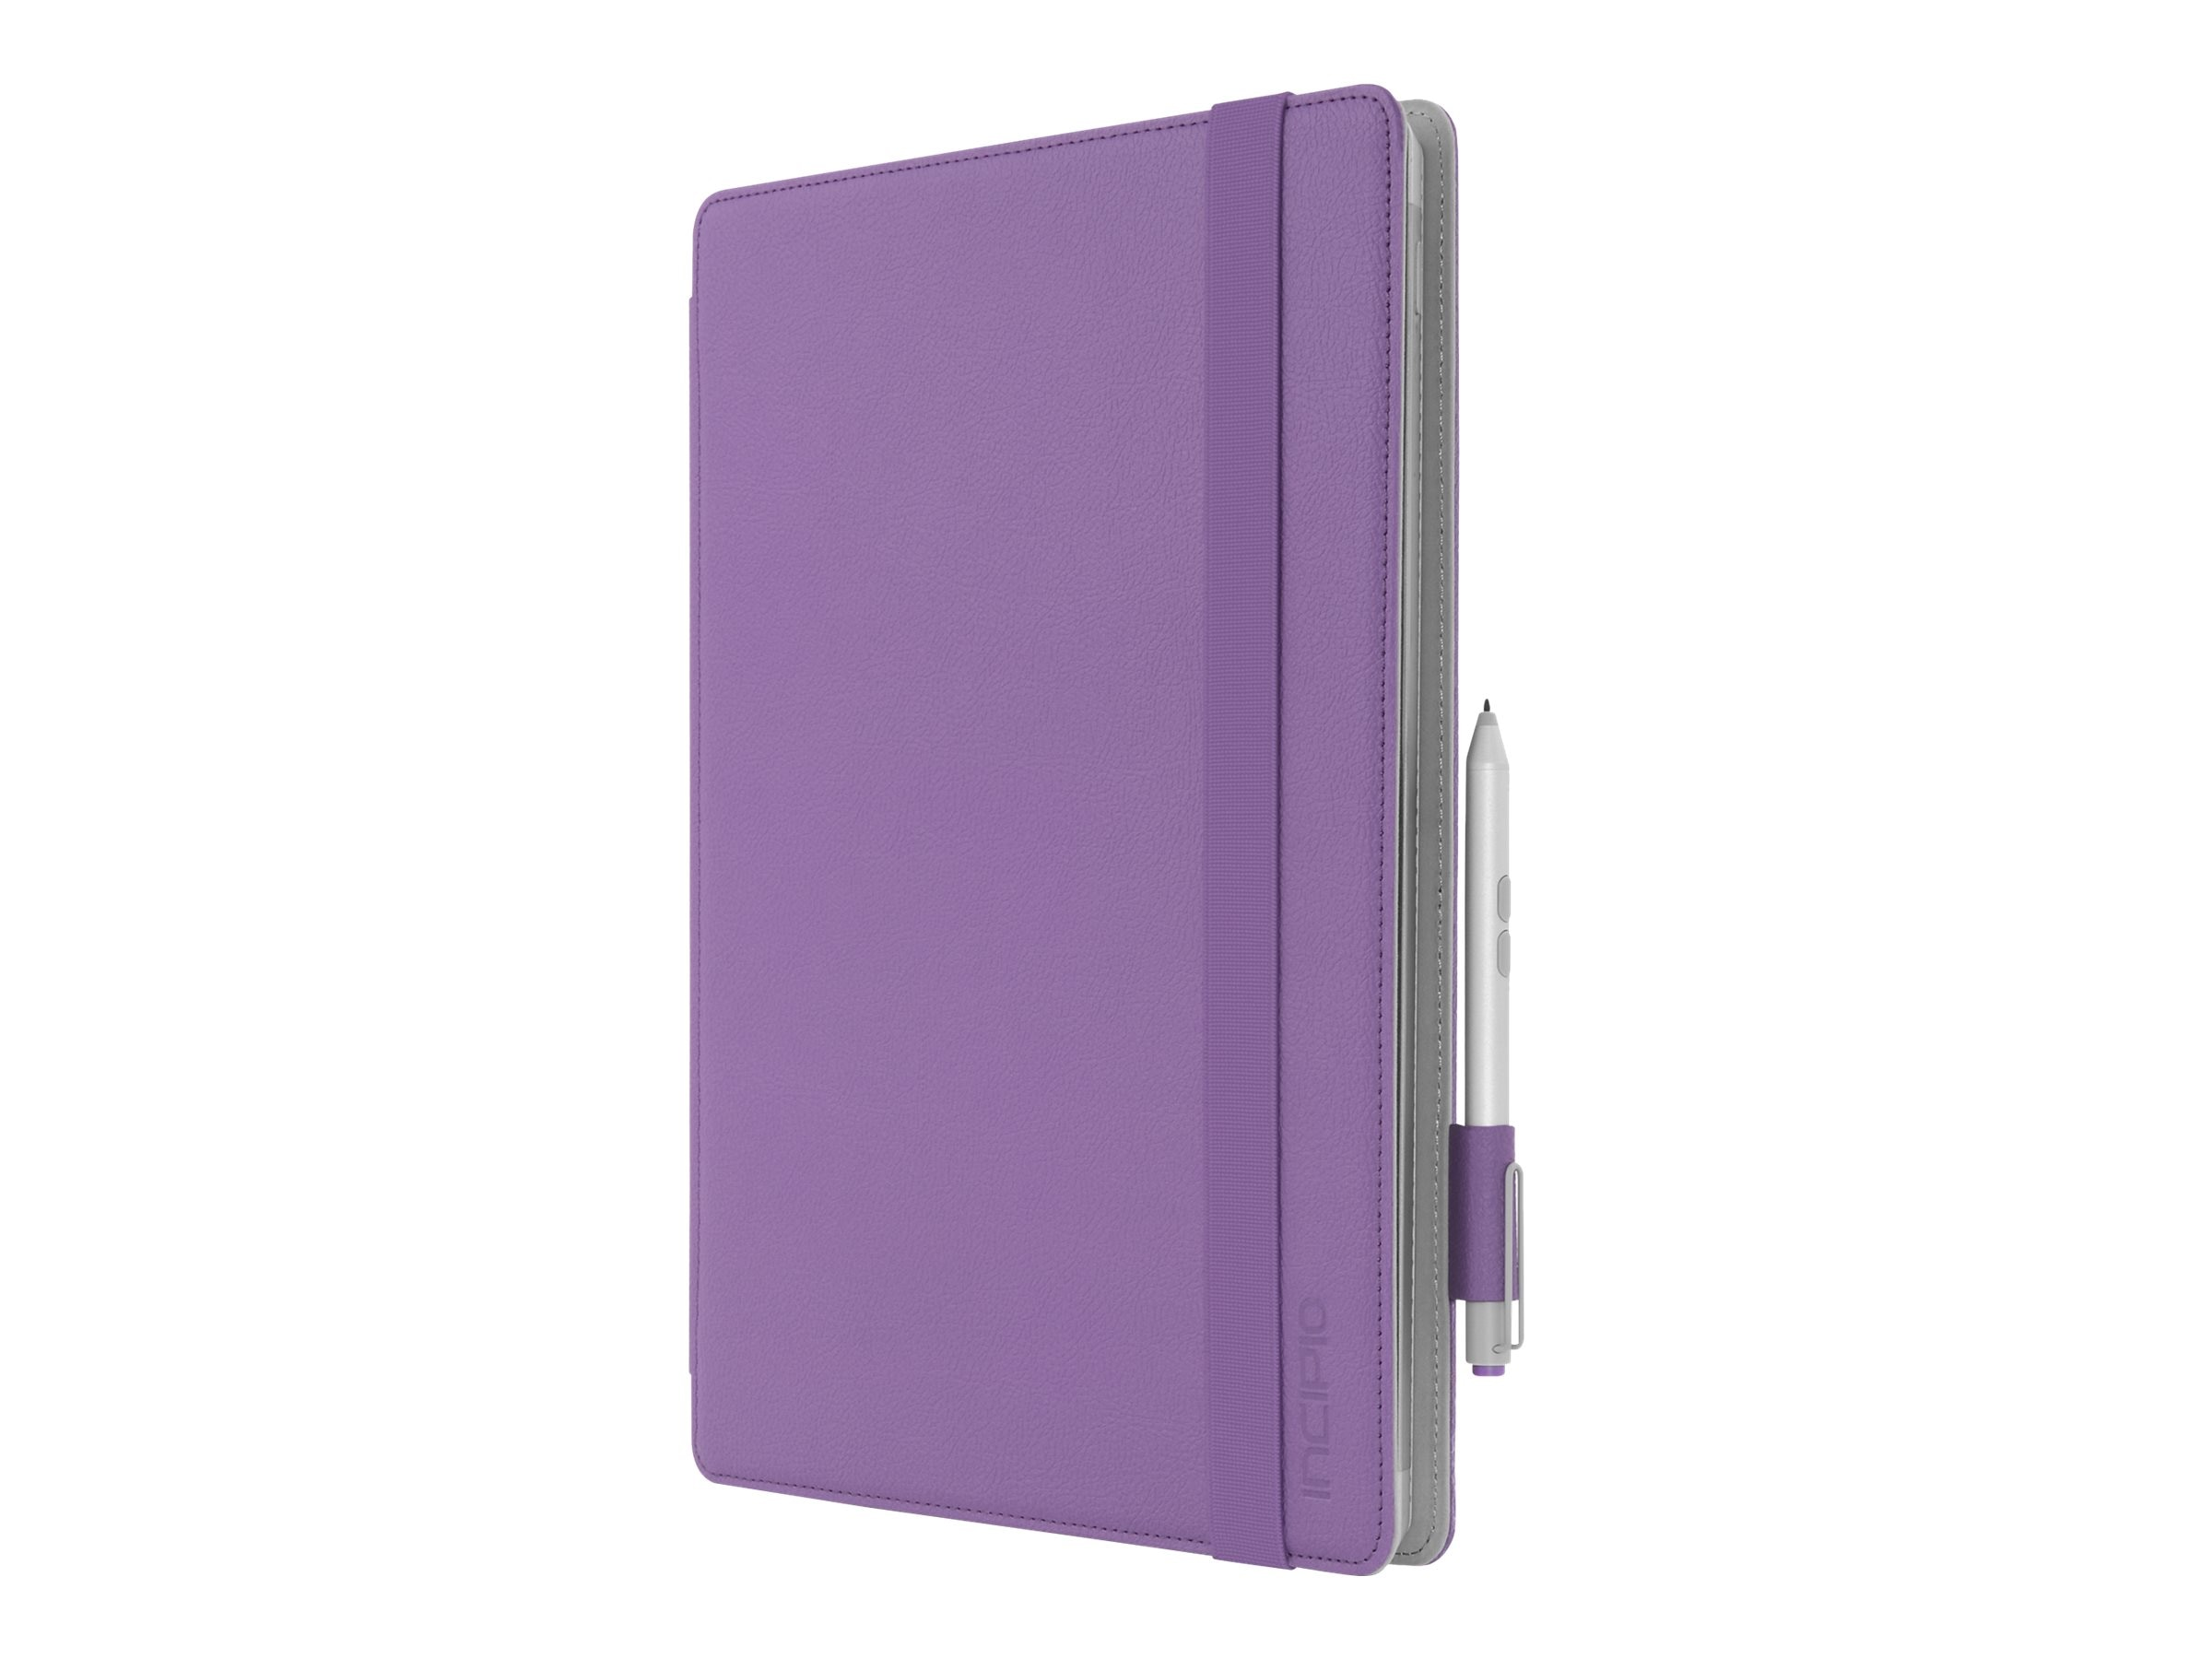 Incipio Roosevelt Slim Folio w  Snap-On Type Cover Compatibility for Microsoft Surface Pro 3 & 4, Purple